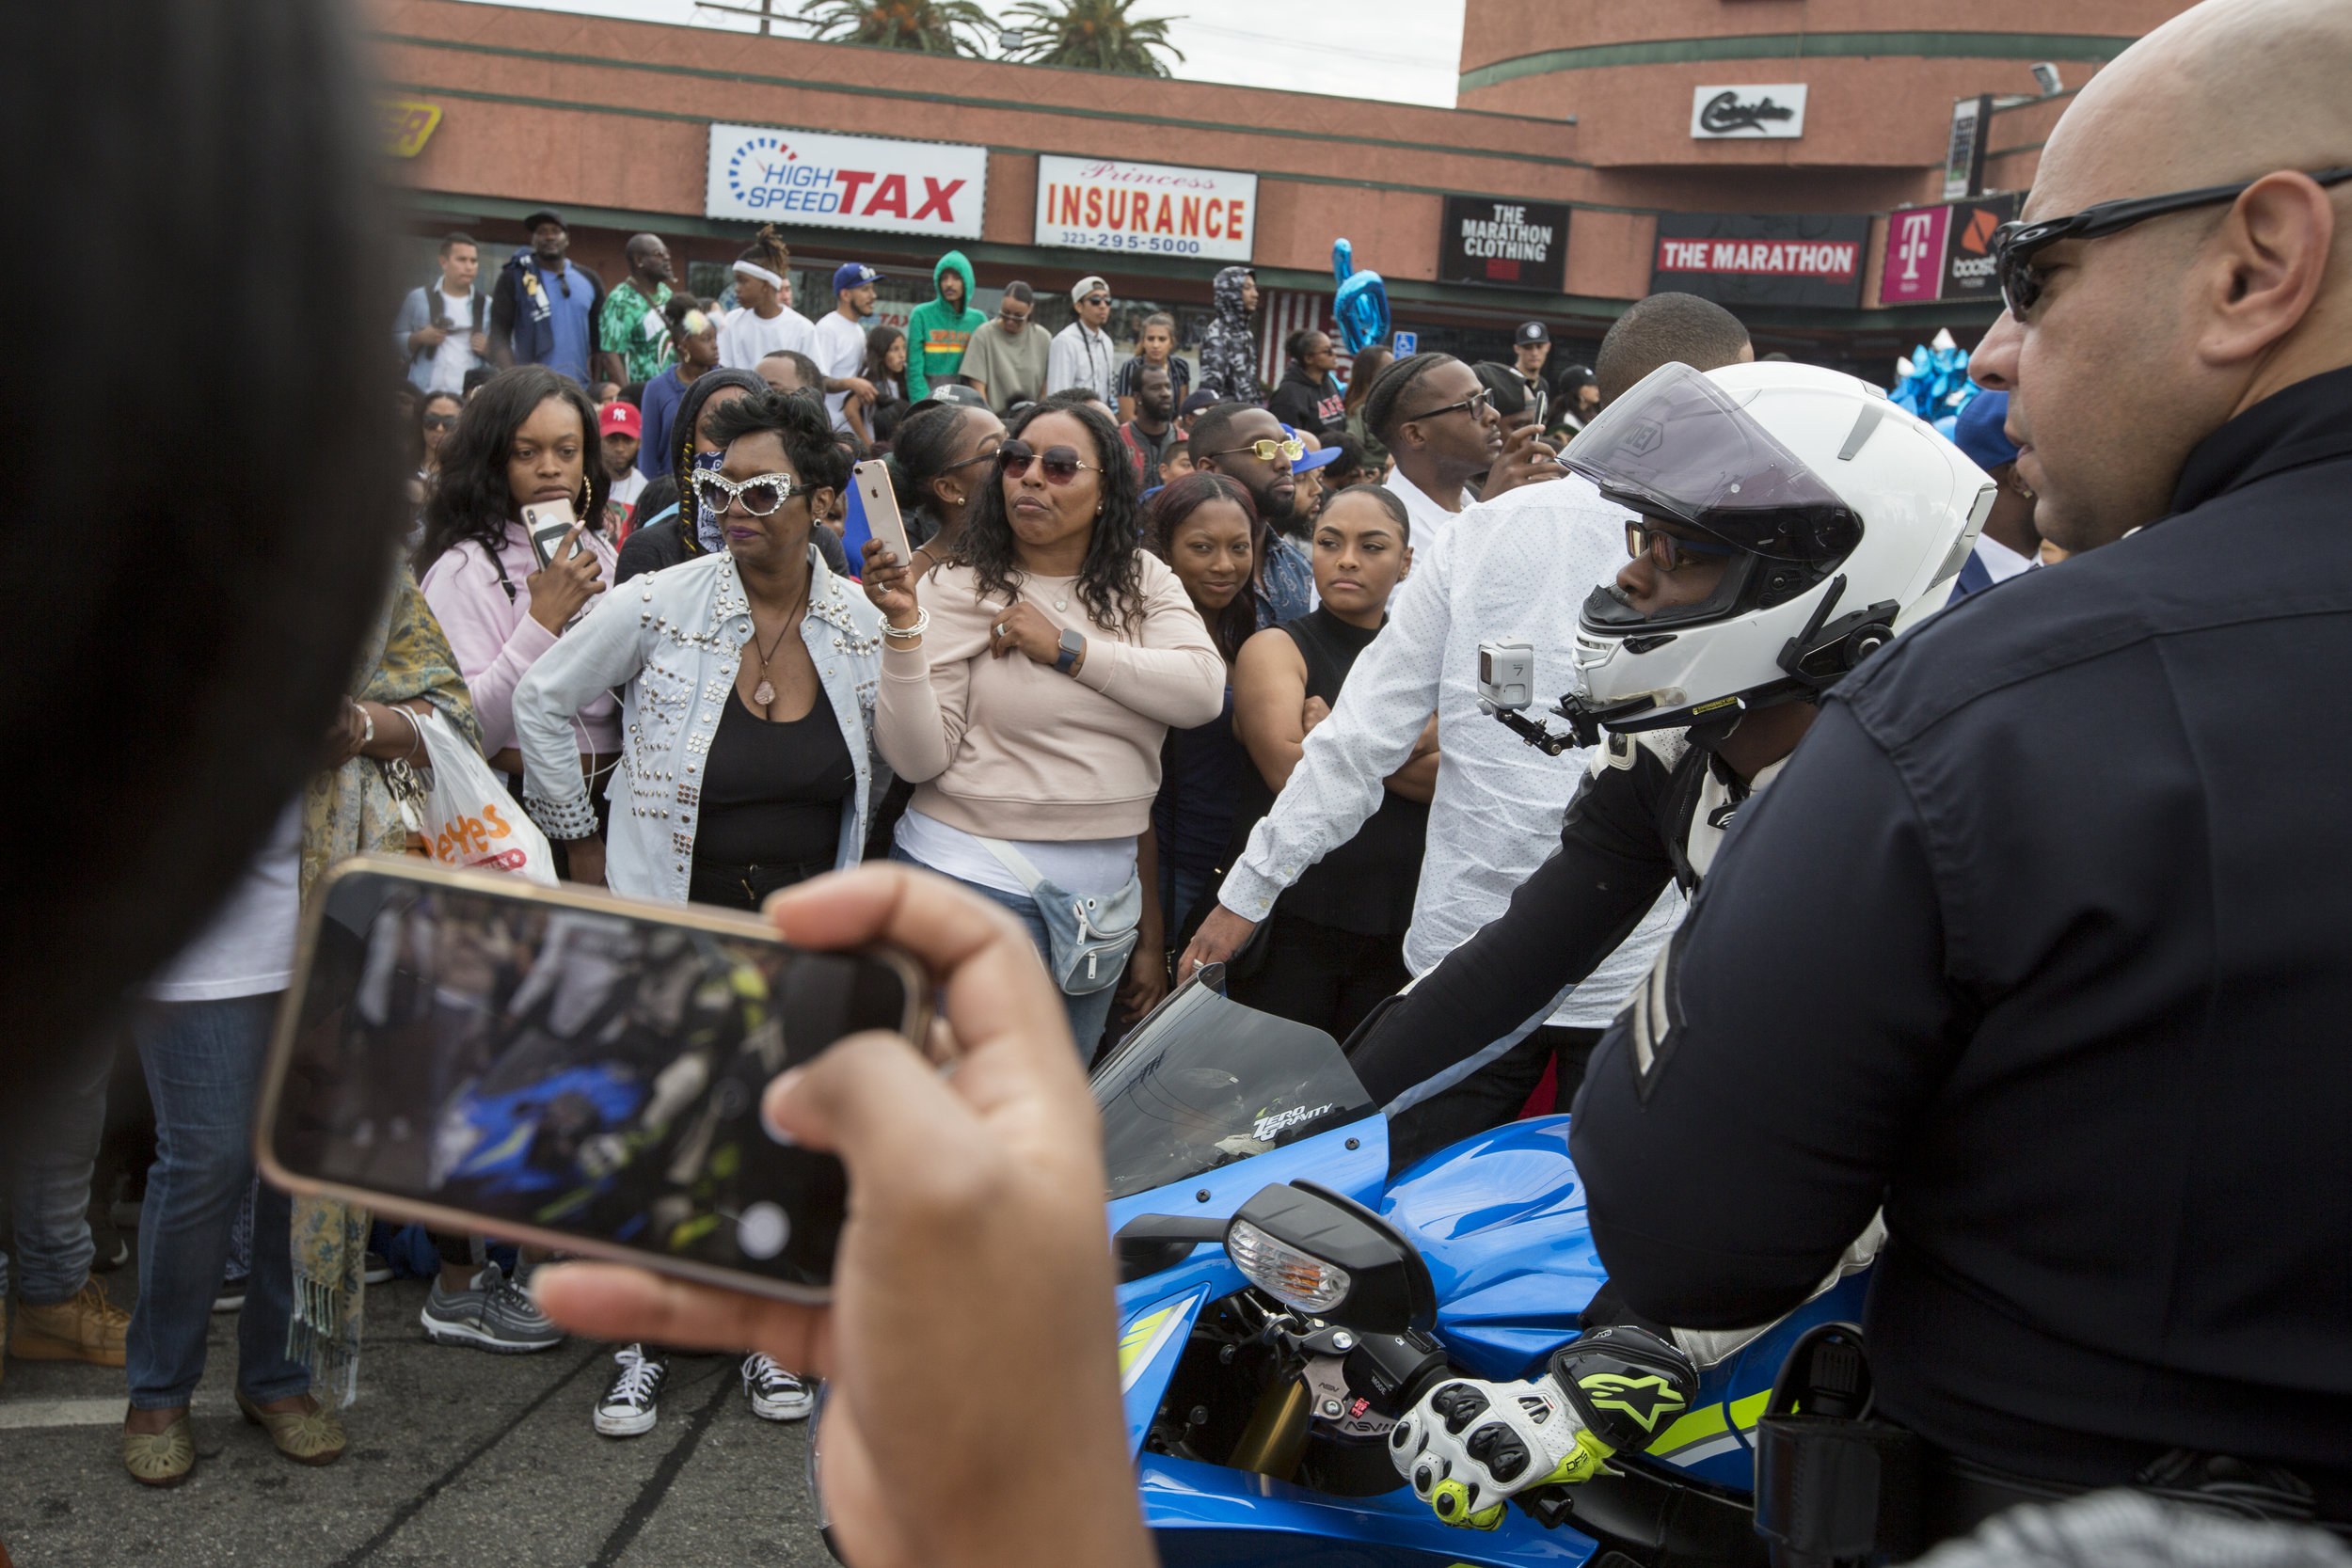 """Fans turn out for the Celebration of Life procession to say goodbye to Nipsey Hussle along Slauson Ave. near The Marathon Clothing store, the location of his murder, in Los Angeles, California on April 11, 2019.  The hearse carrying the casket of the slain rapper, Nipsey Hussle, will journey a 25.5 mile """"Victory Lap"""" through South Central and ending at the Angelus Funeral home to allow his fans, who could not attend the ceremony, to say goodbye.  (Jose Lopez)"""